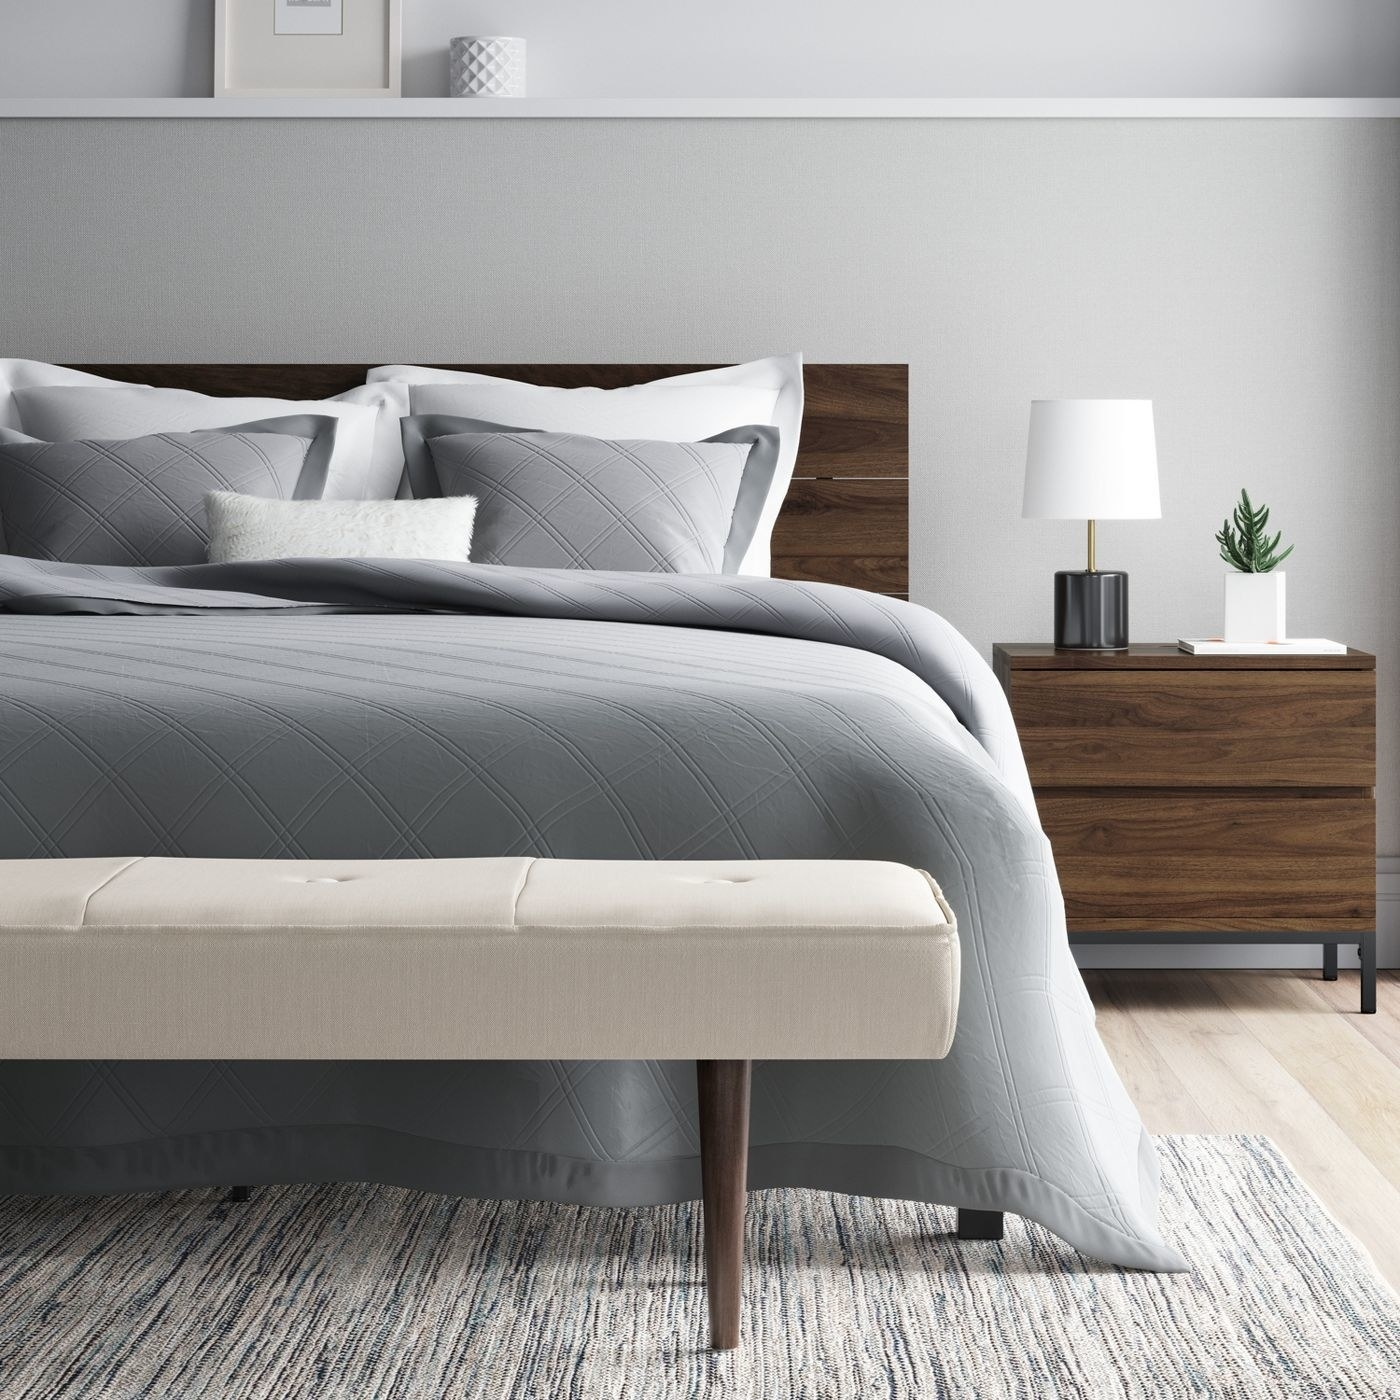 31 Furniture Items From Target That May Be Under $300, But Look Much More Expensive